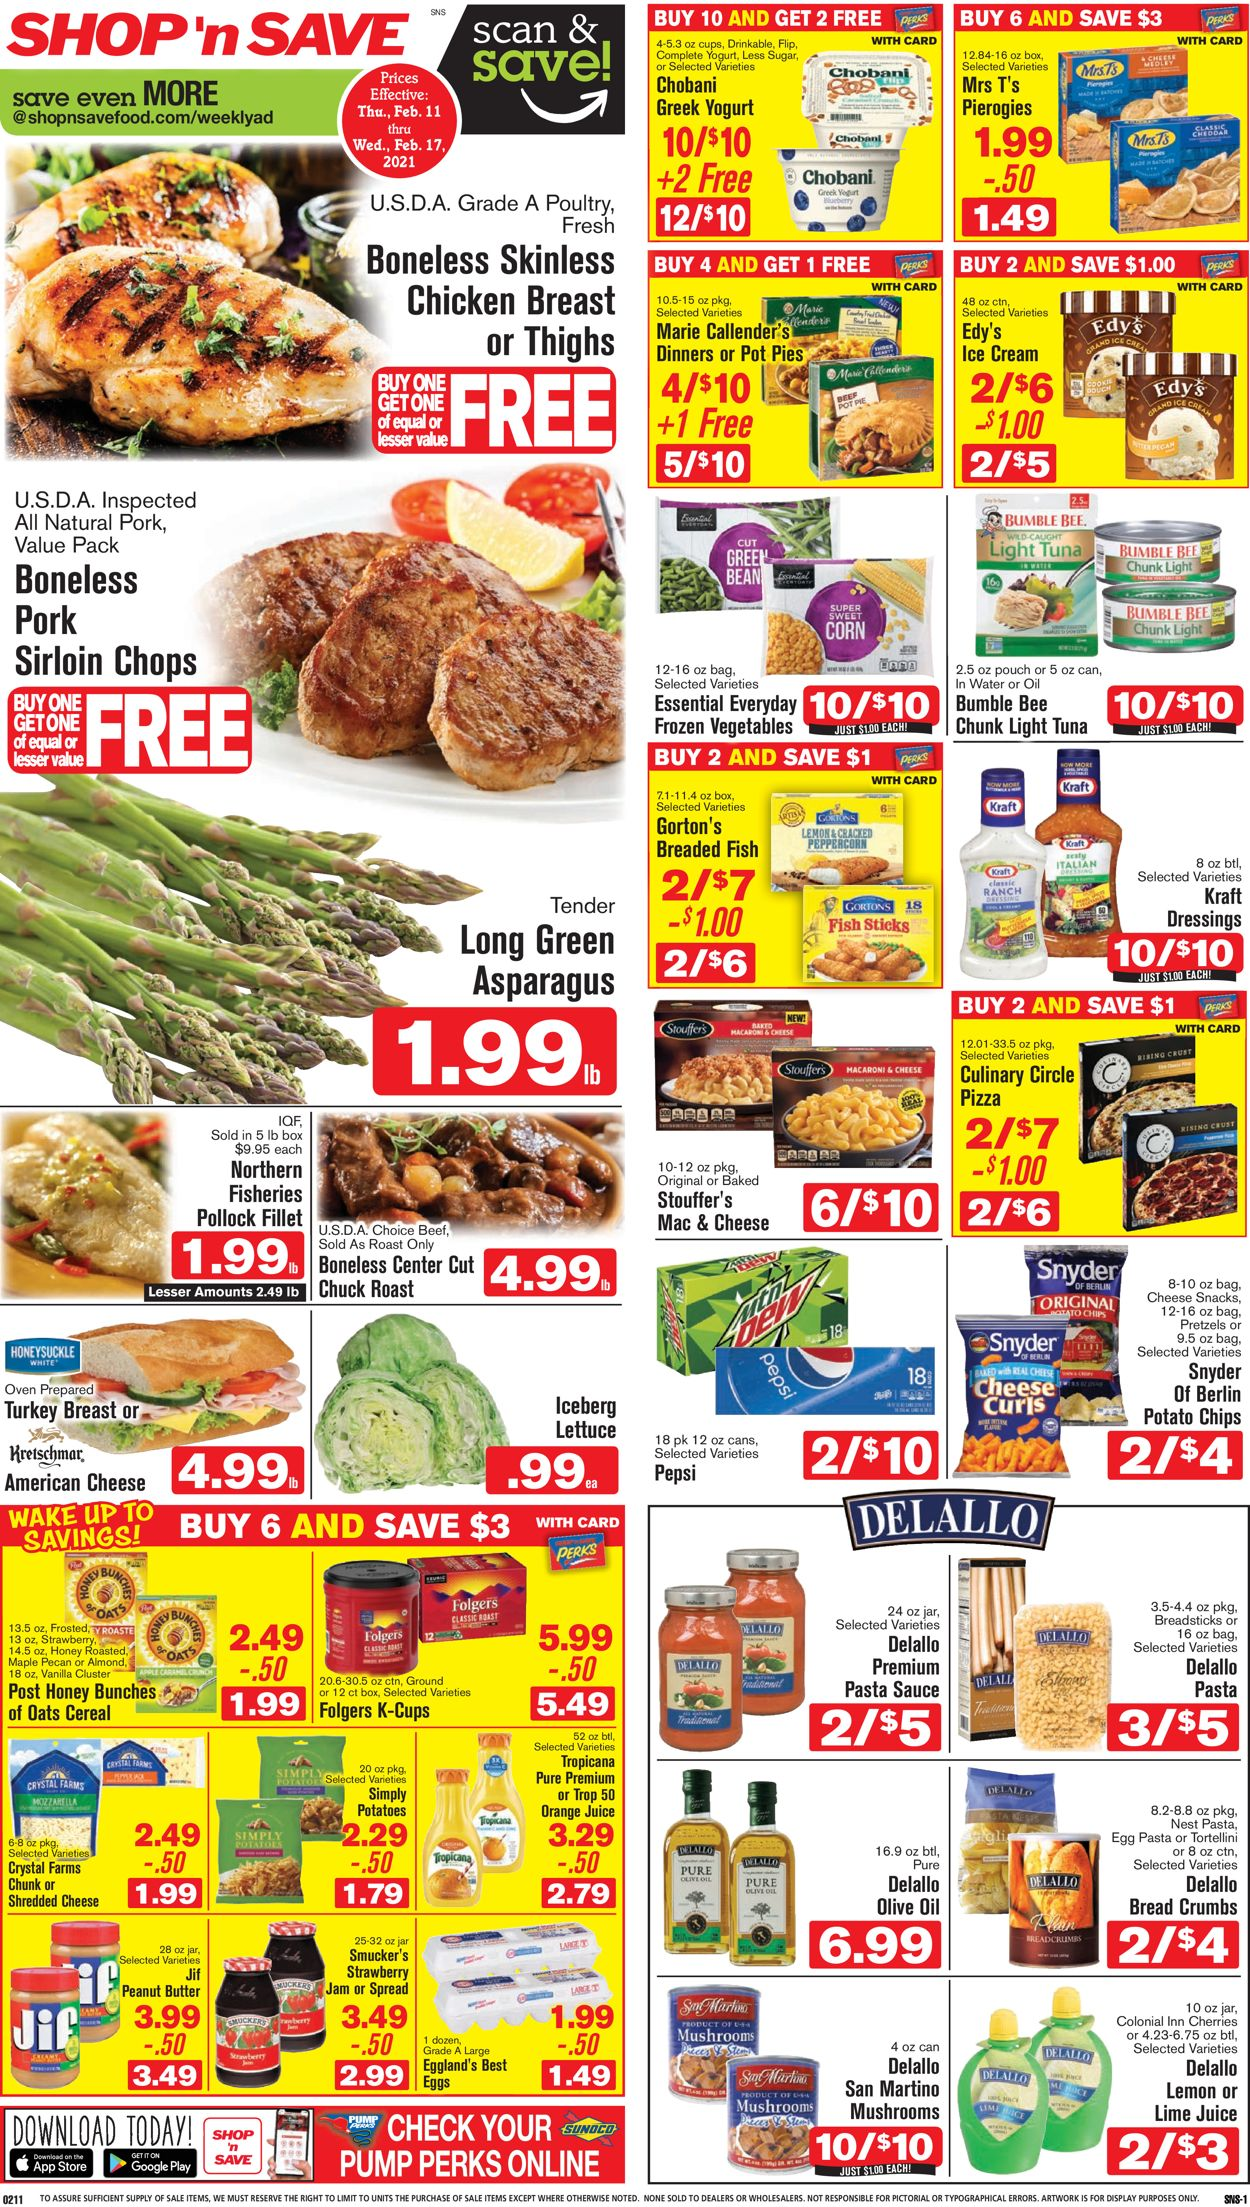 Shop 'n Save (Pittsburgh) Weekly Ad Circular - valid 02/11-02/17/2021